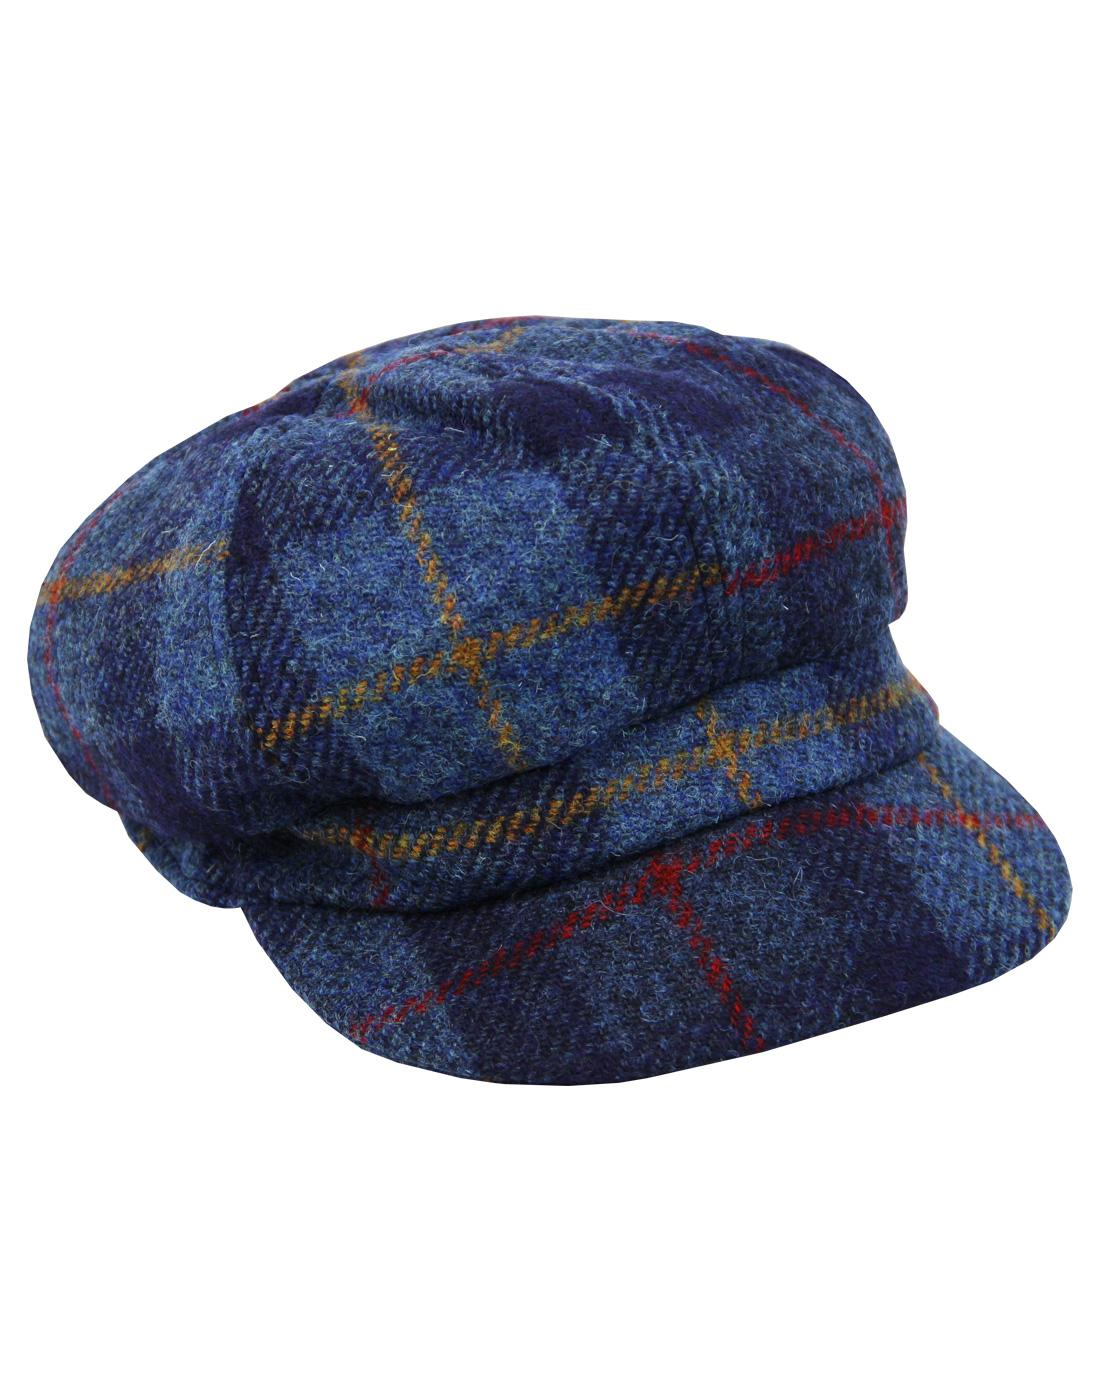 FAILSWORTH Harris Tweed Womens Gatsby Cap BLUE